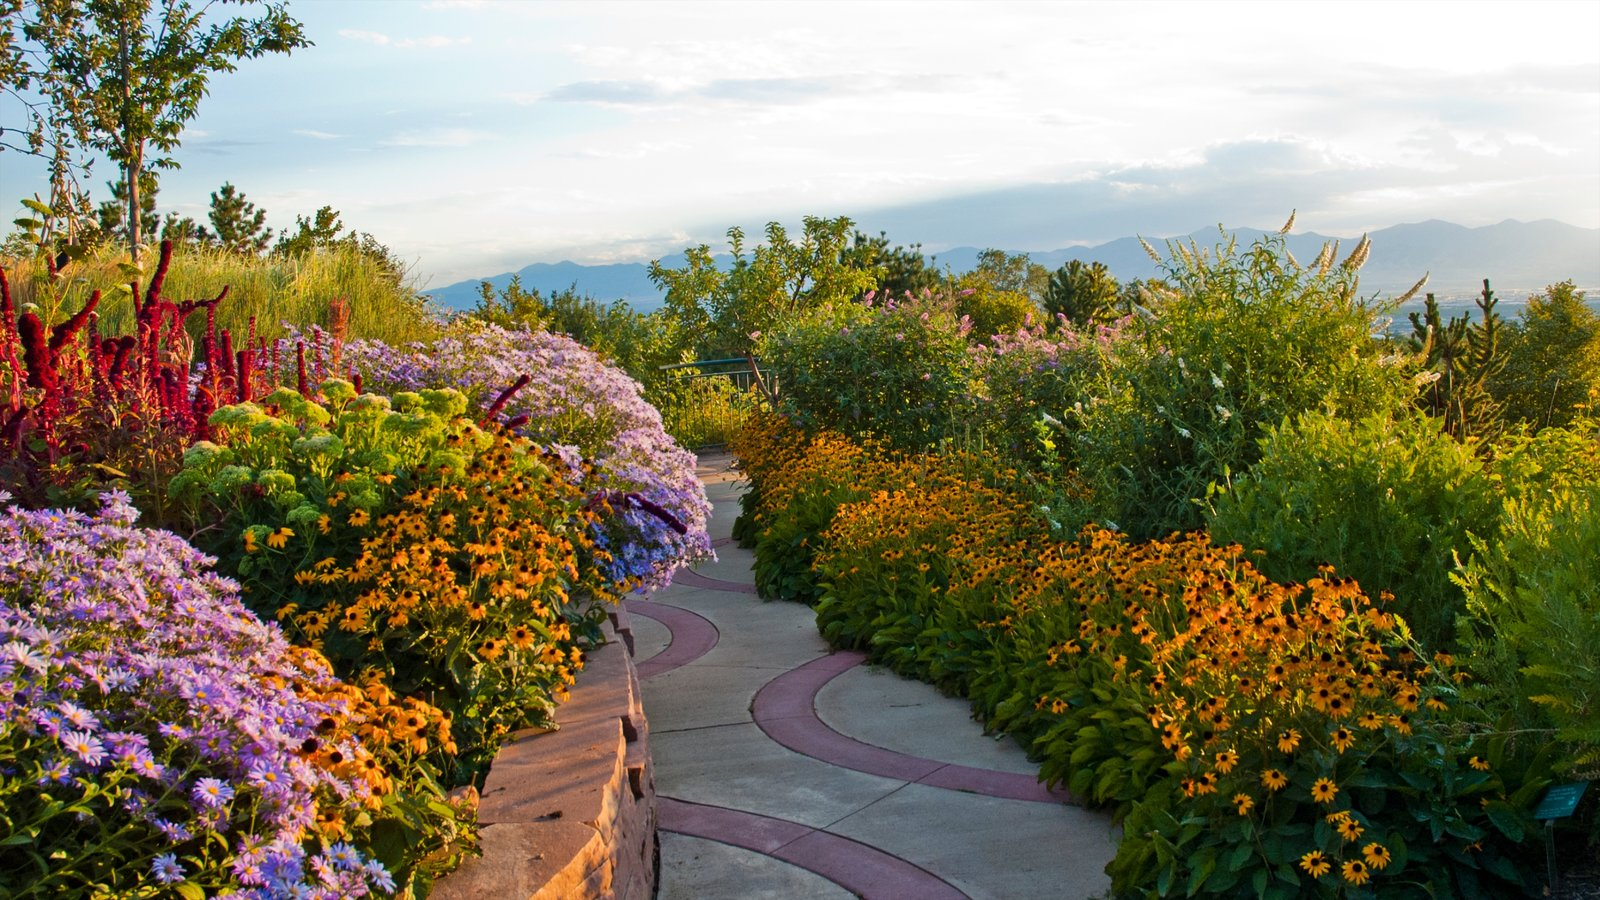 Red Butte Garden and Arboreteum showing a garden and flowers